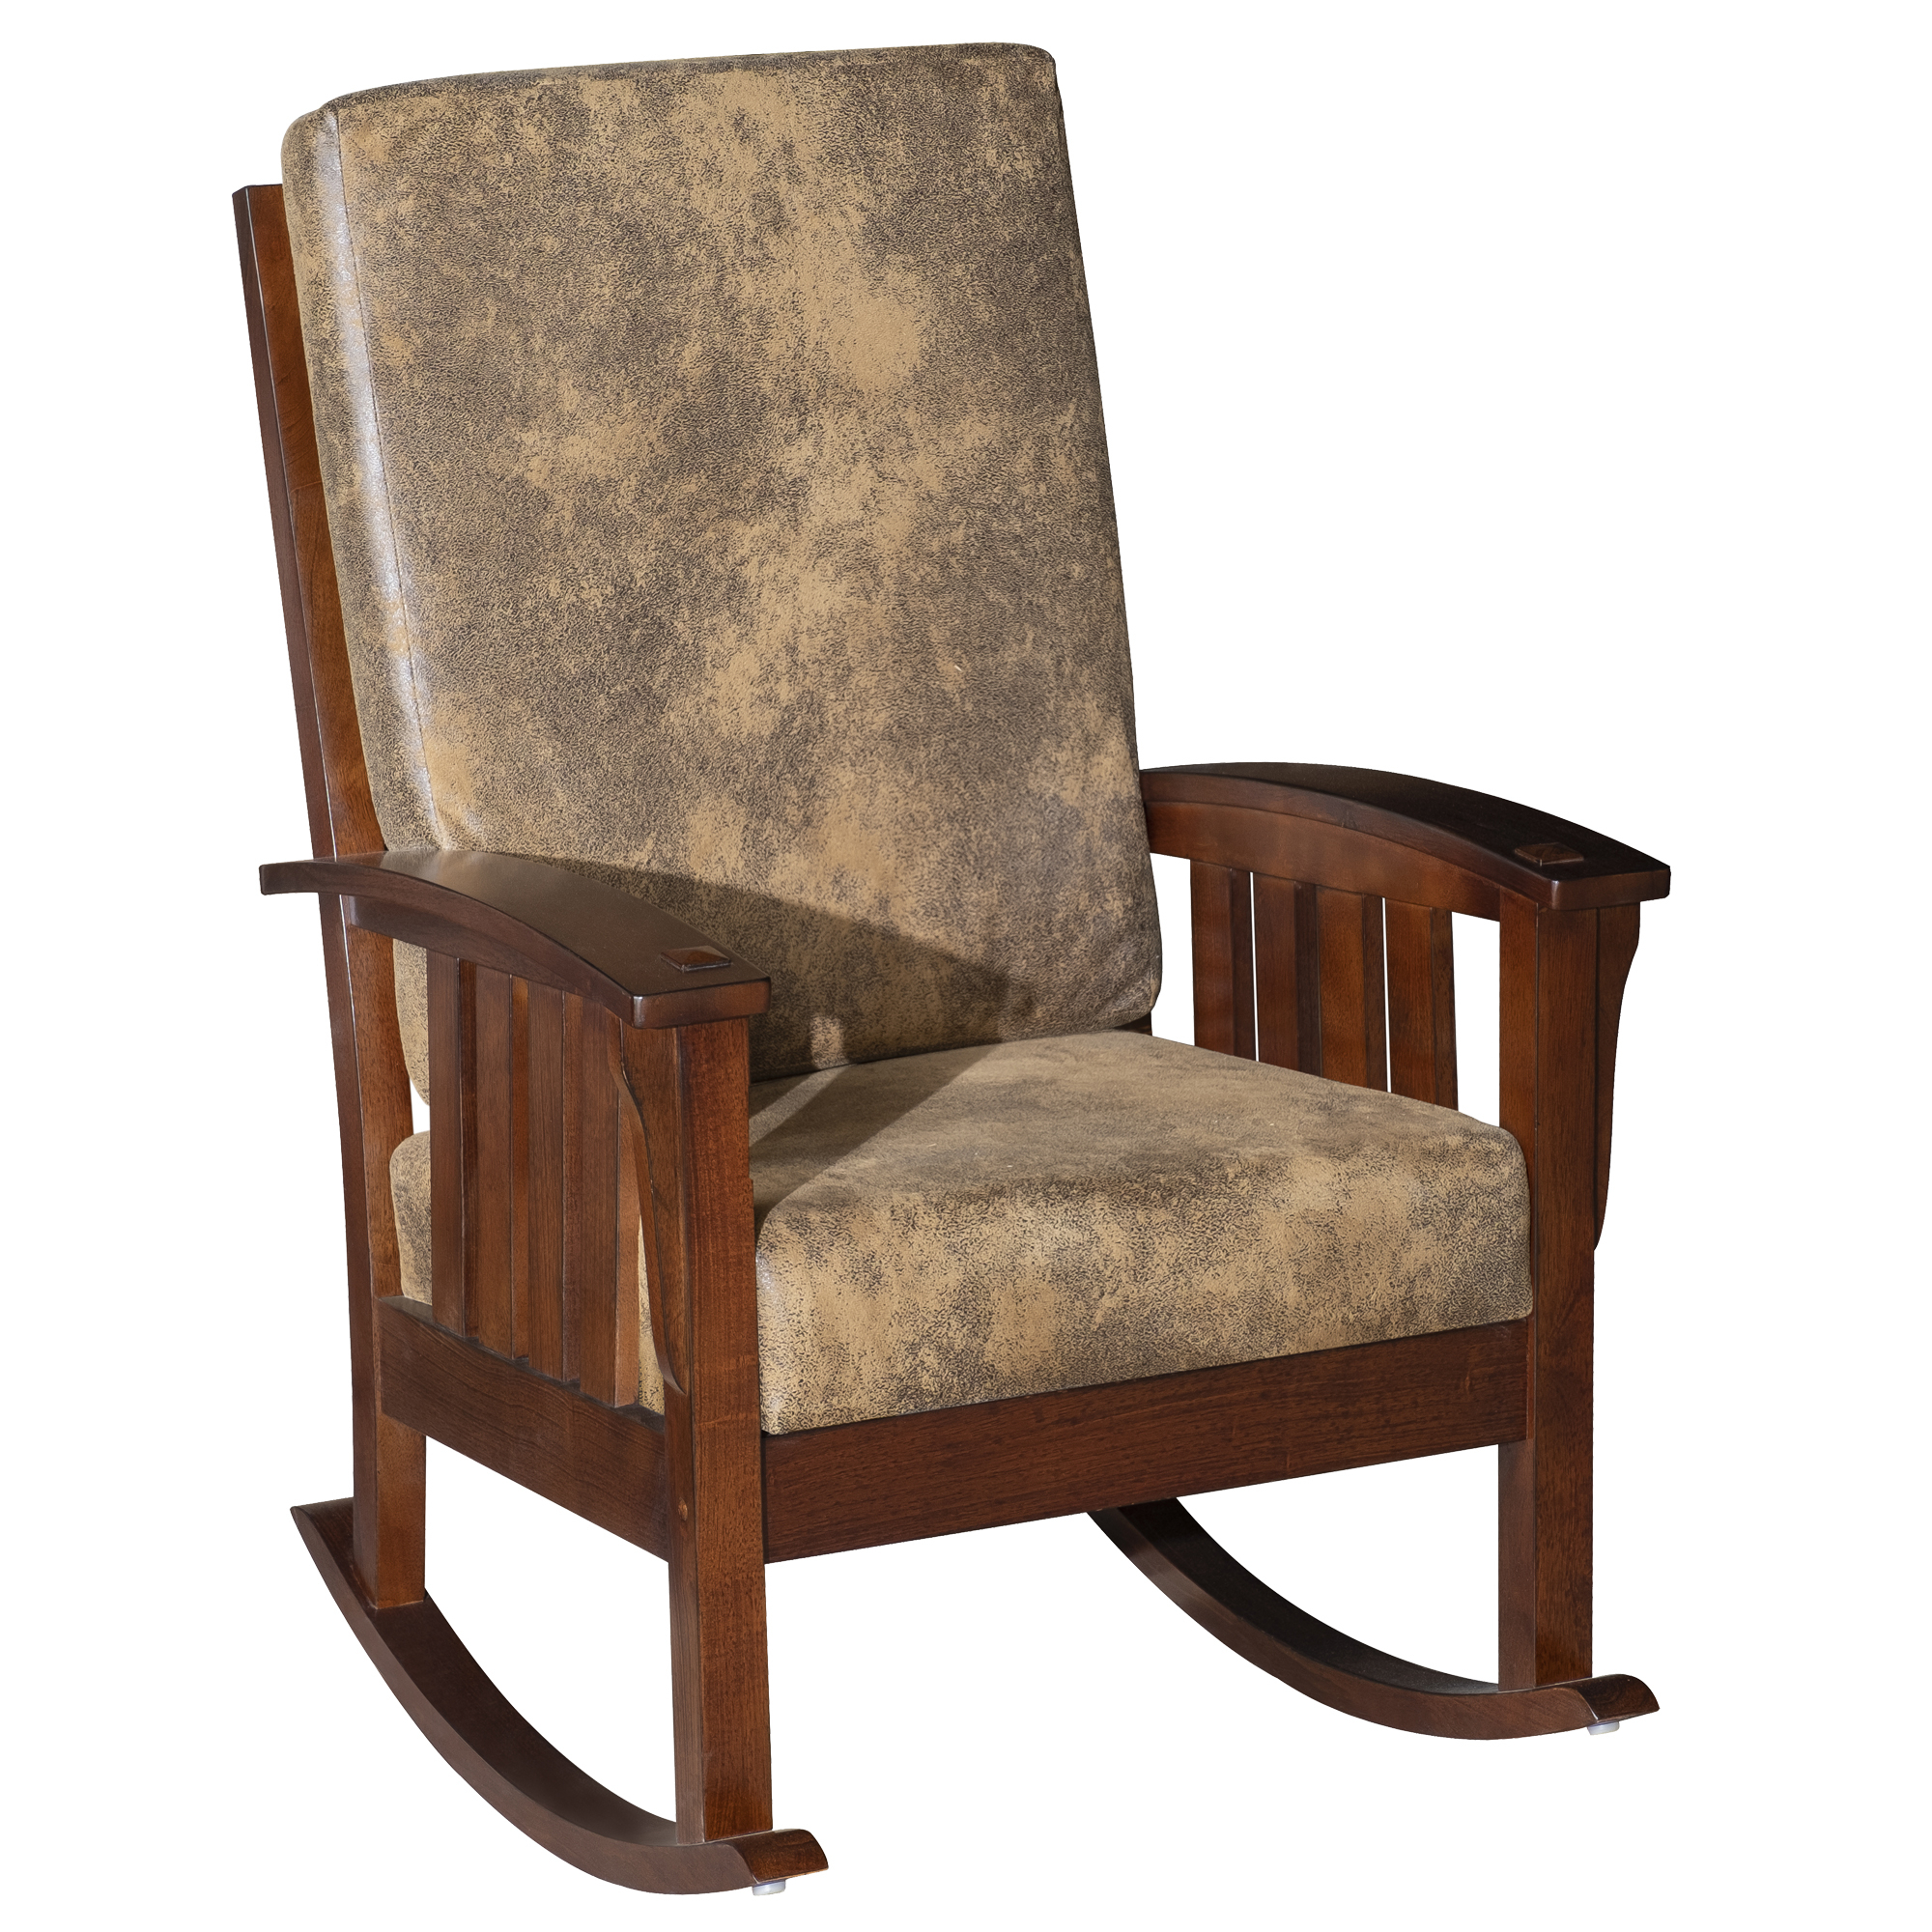 Homcom Faux Suede Rubberwood Indoor Porch Rocking Chair Intended For Black Rubberwood Rocking Chairs (#5 of 20)